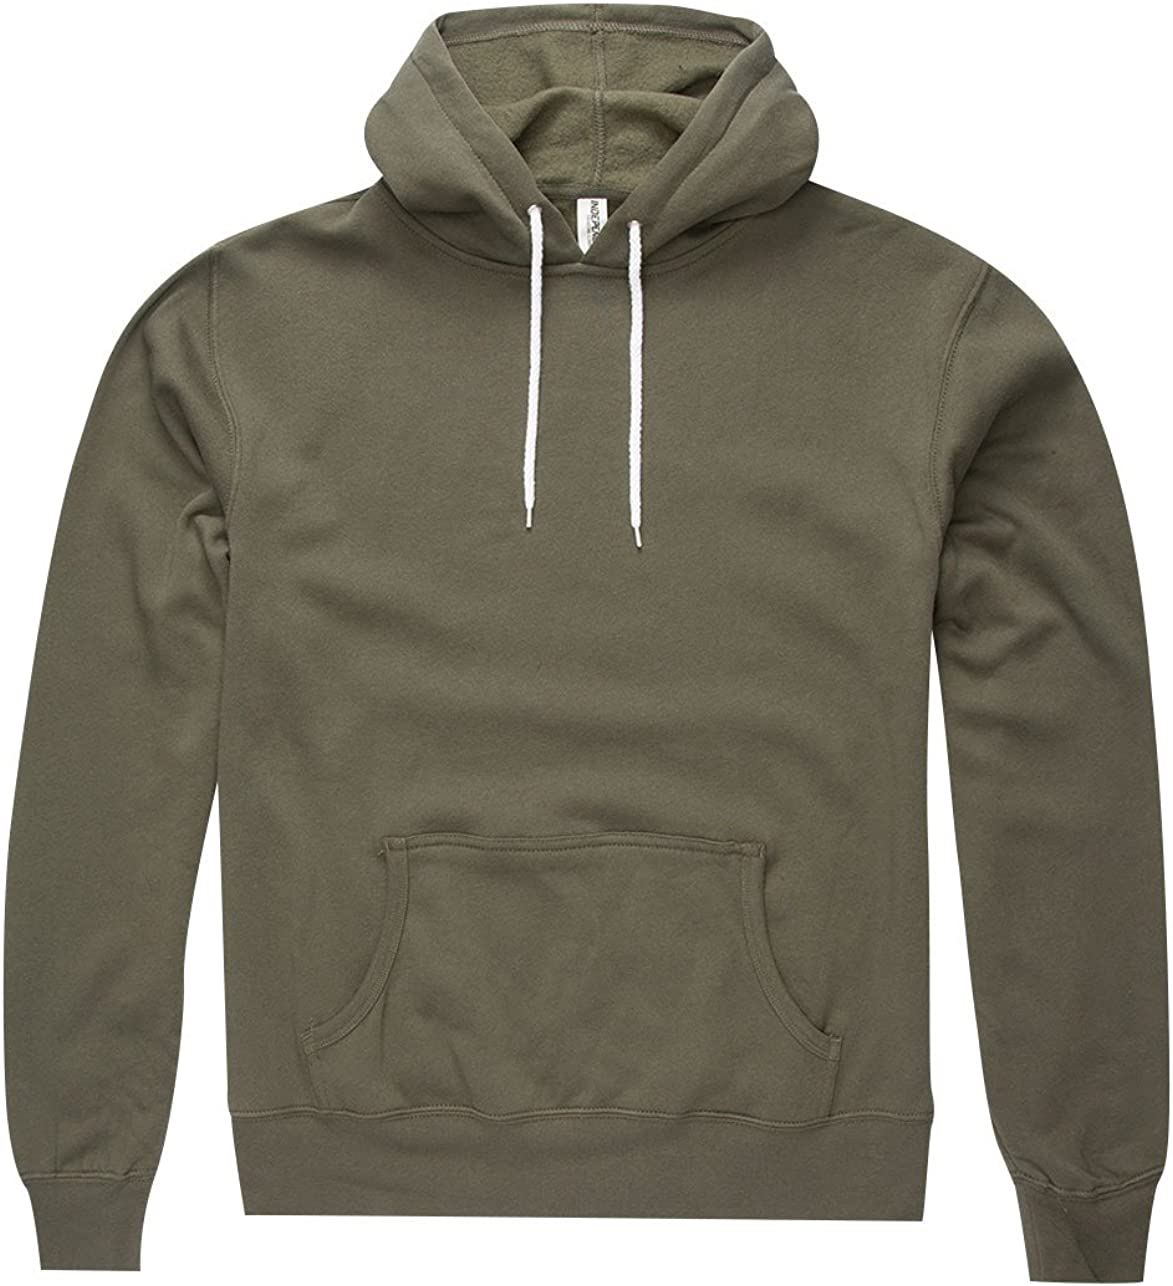 AFX90UN Independent Trading Co... Unisex Hooded Pullover